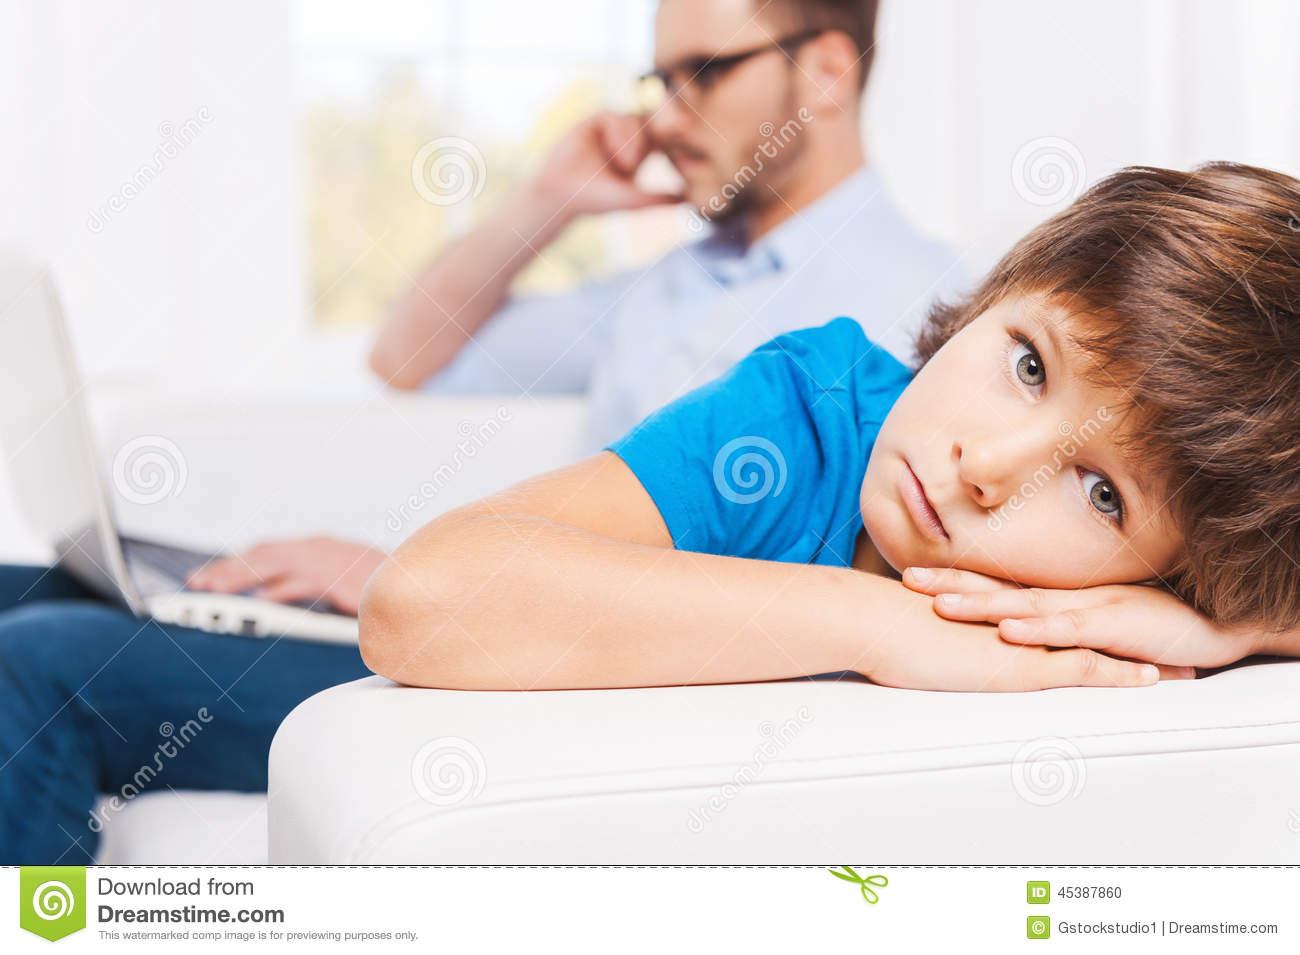 Why he always ignoring me? stock photo  Image of home - 45387860